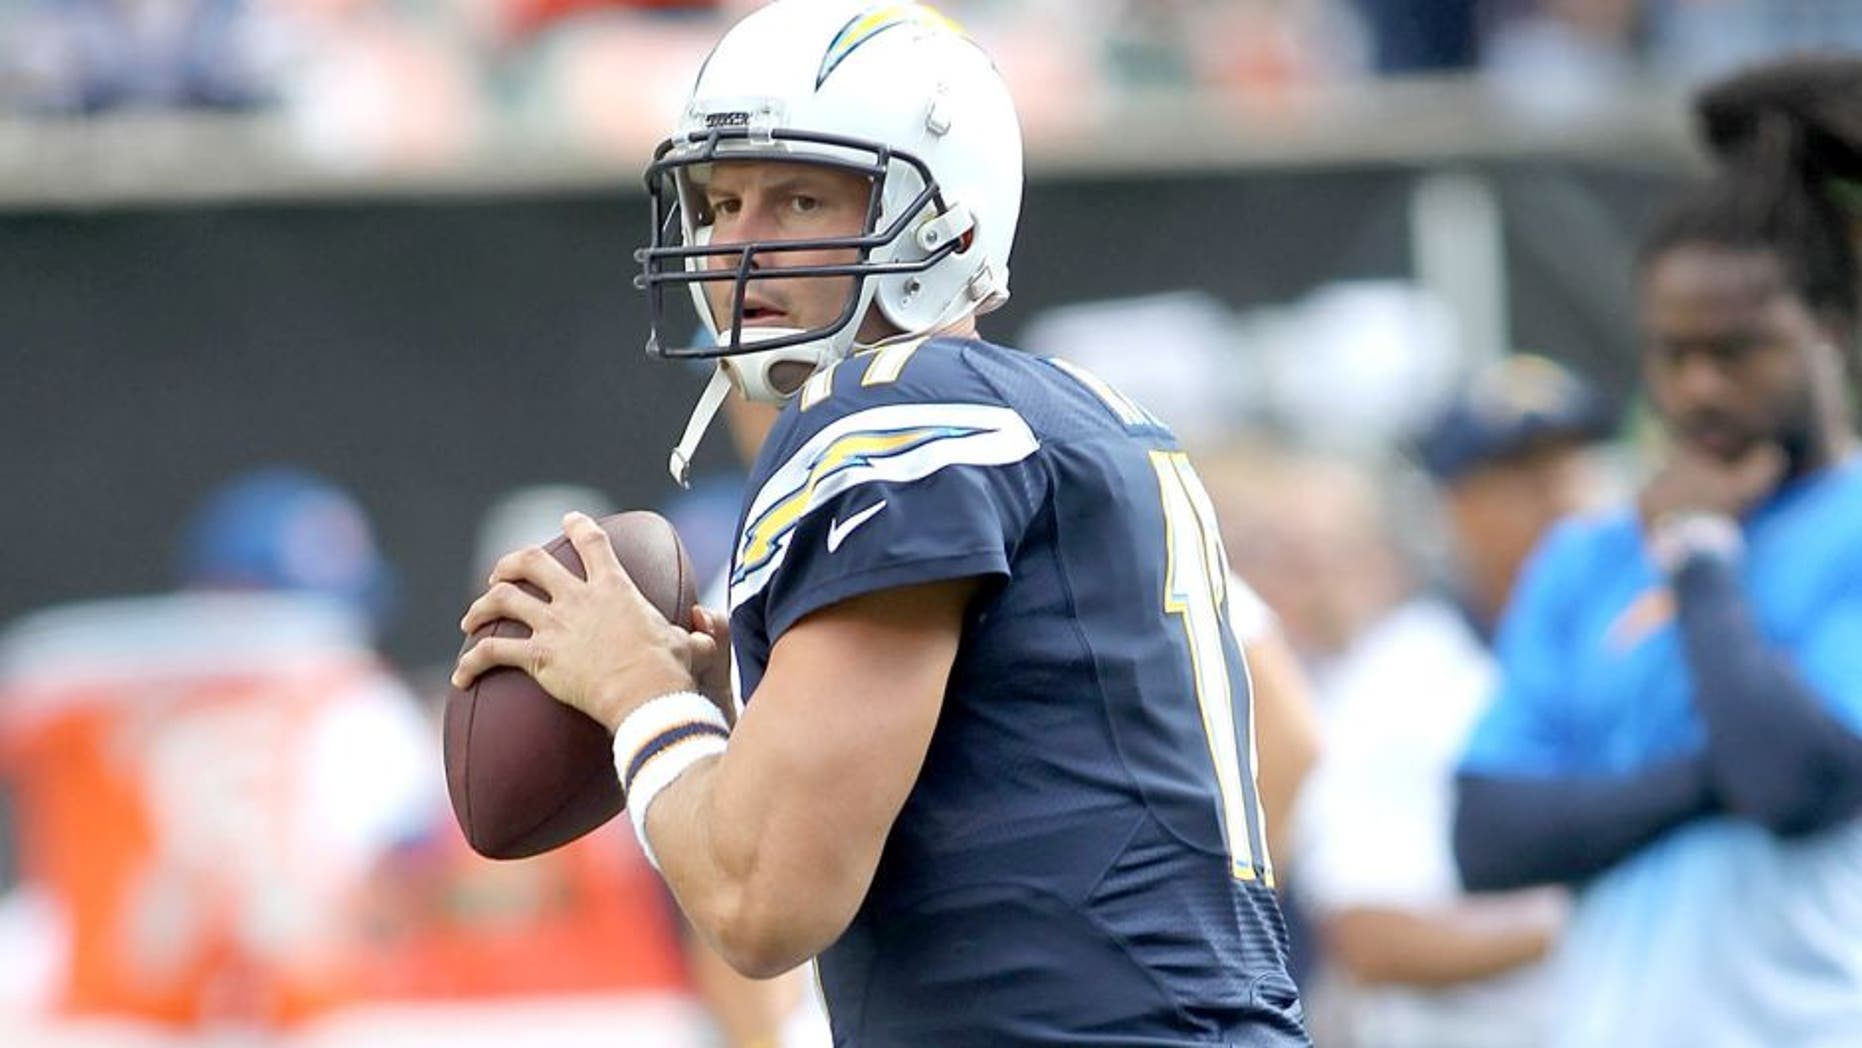 CINCINNATI, OH - SEPTEMBER 20: Philip Rivers #17 of the San Diego Chargers warms up prior to the game against the Cincinnati Bengals at Paul Brown Stadium on September 20, 2015 in Cincinnati, Ohio. (Photo by John Grieshop/Getty Images)